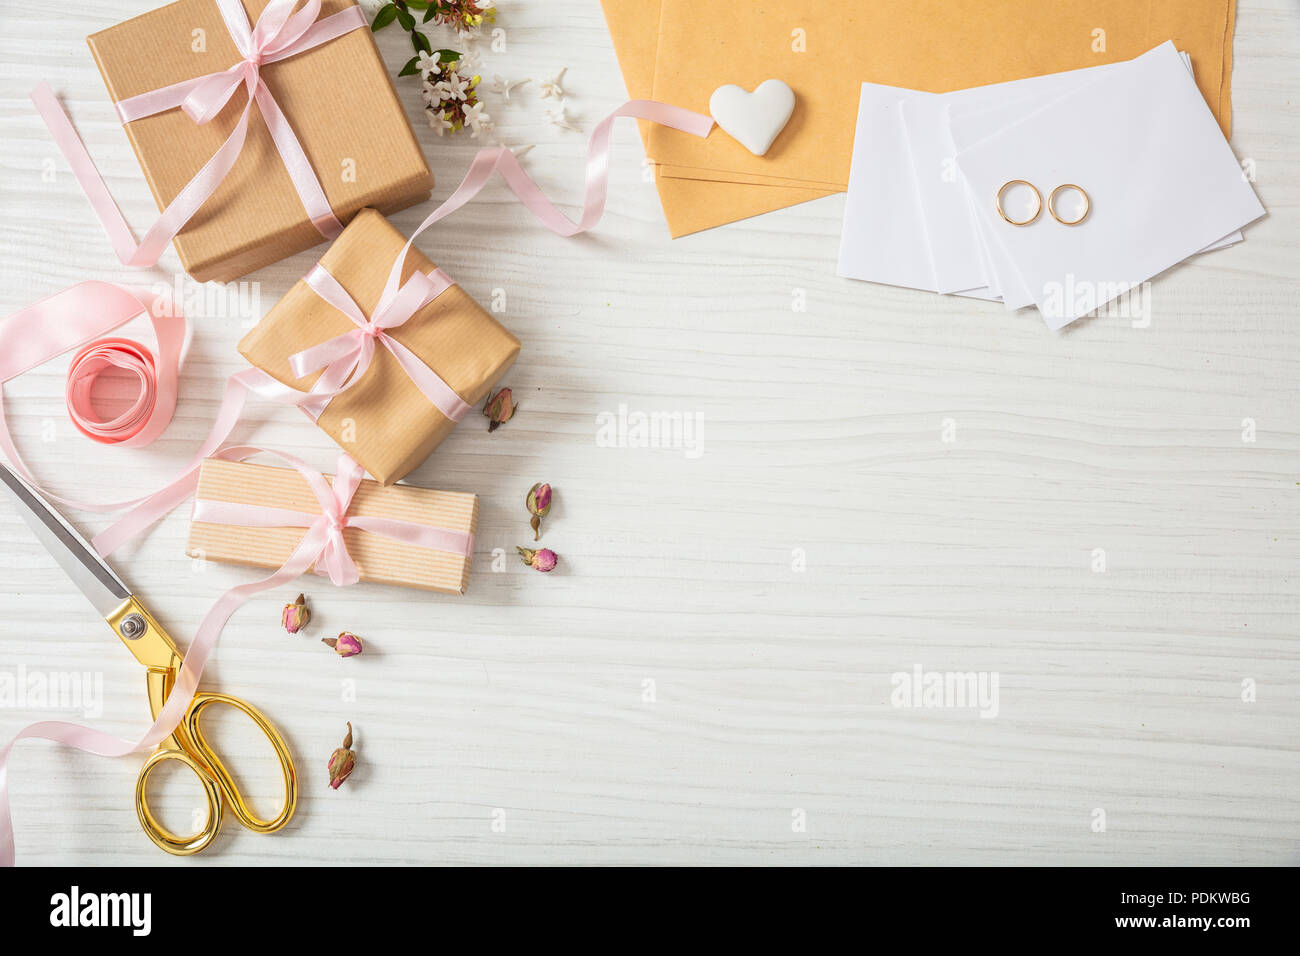 Wedding Schedule Stock Photos & Wedding Schedule Stock Images - Alamy